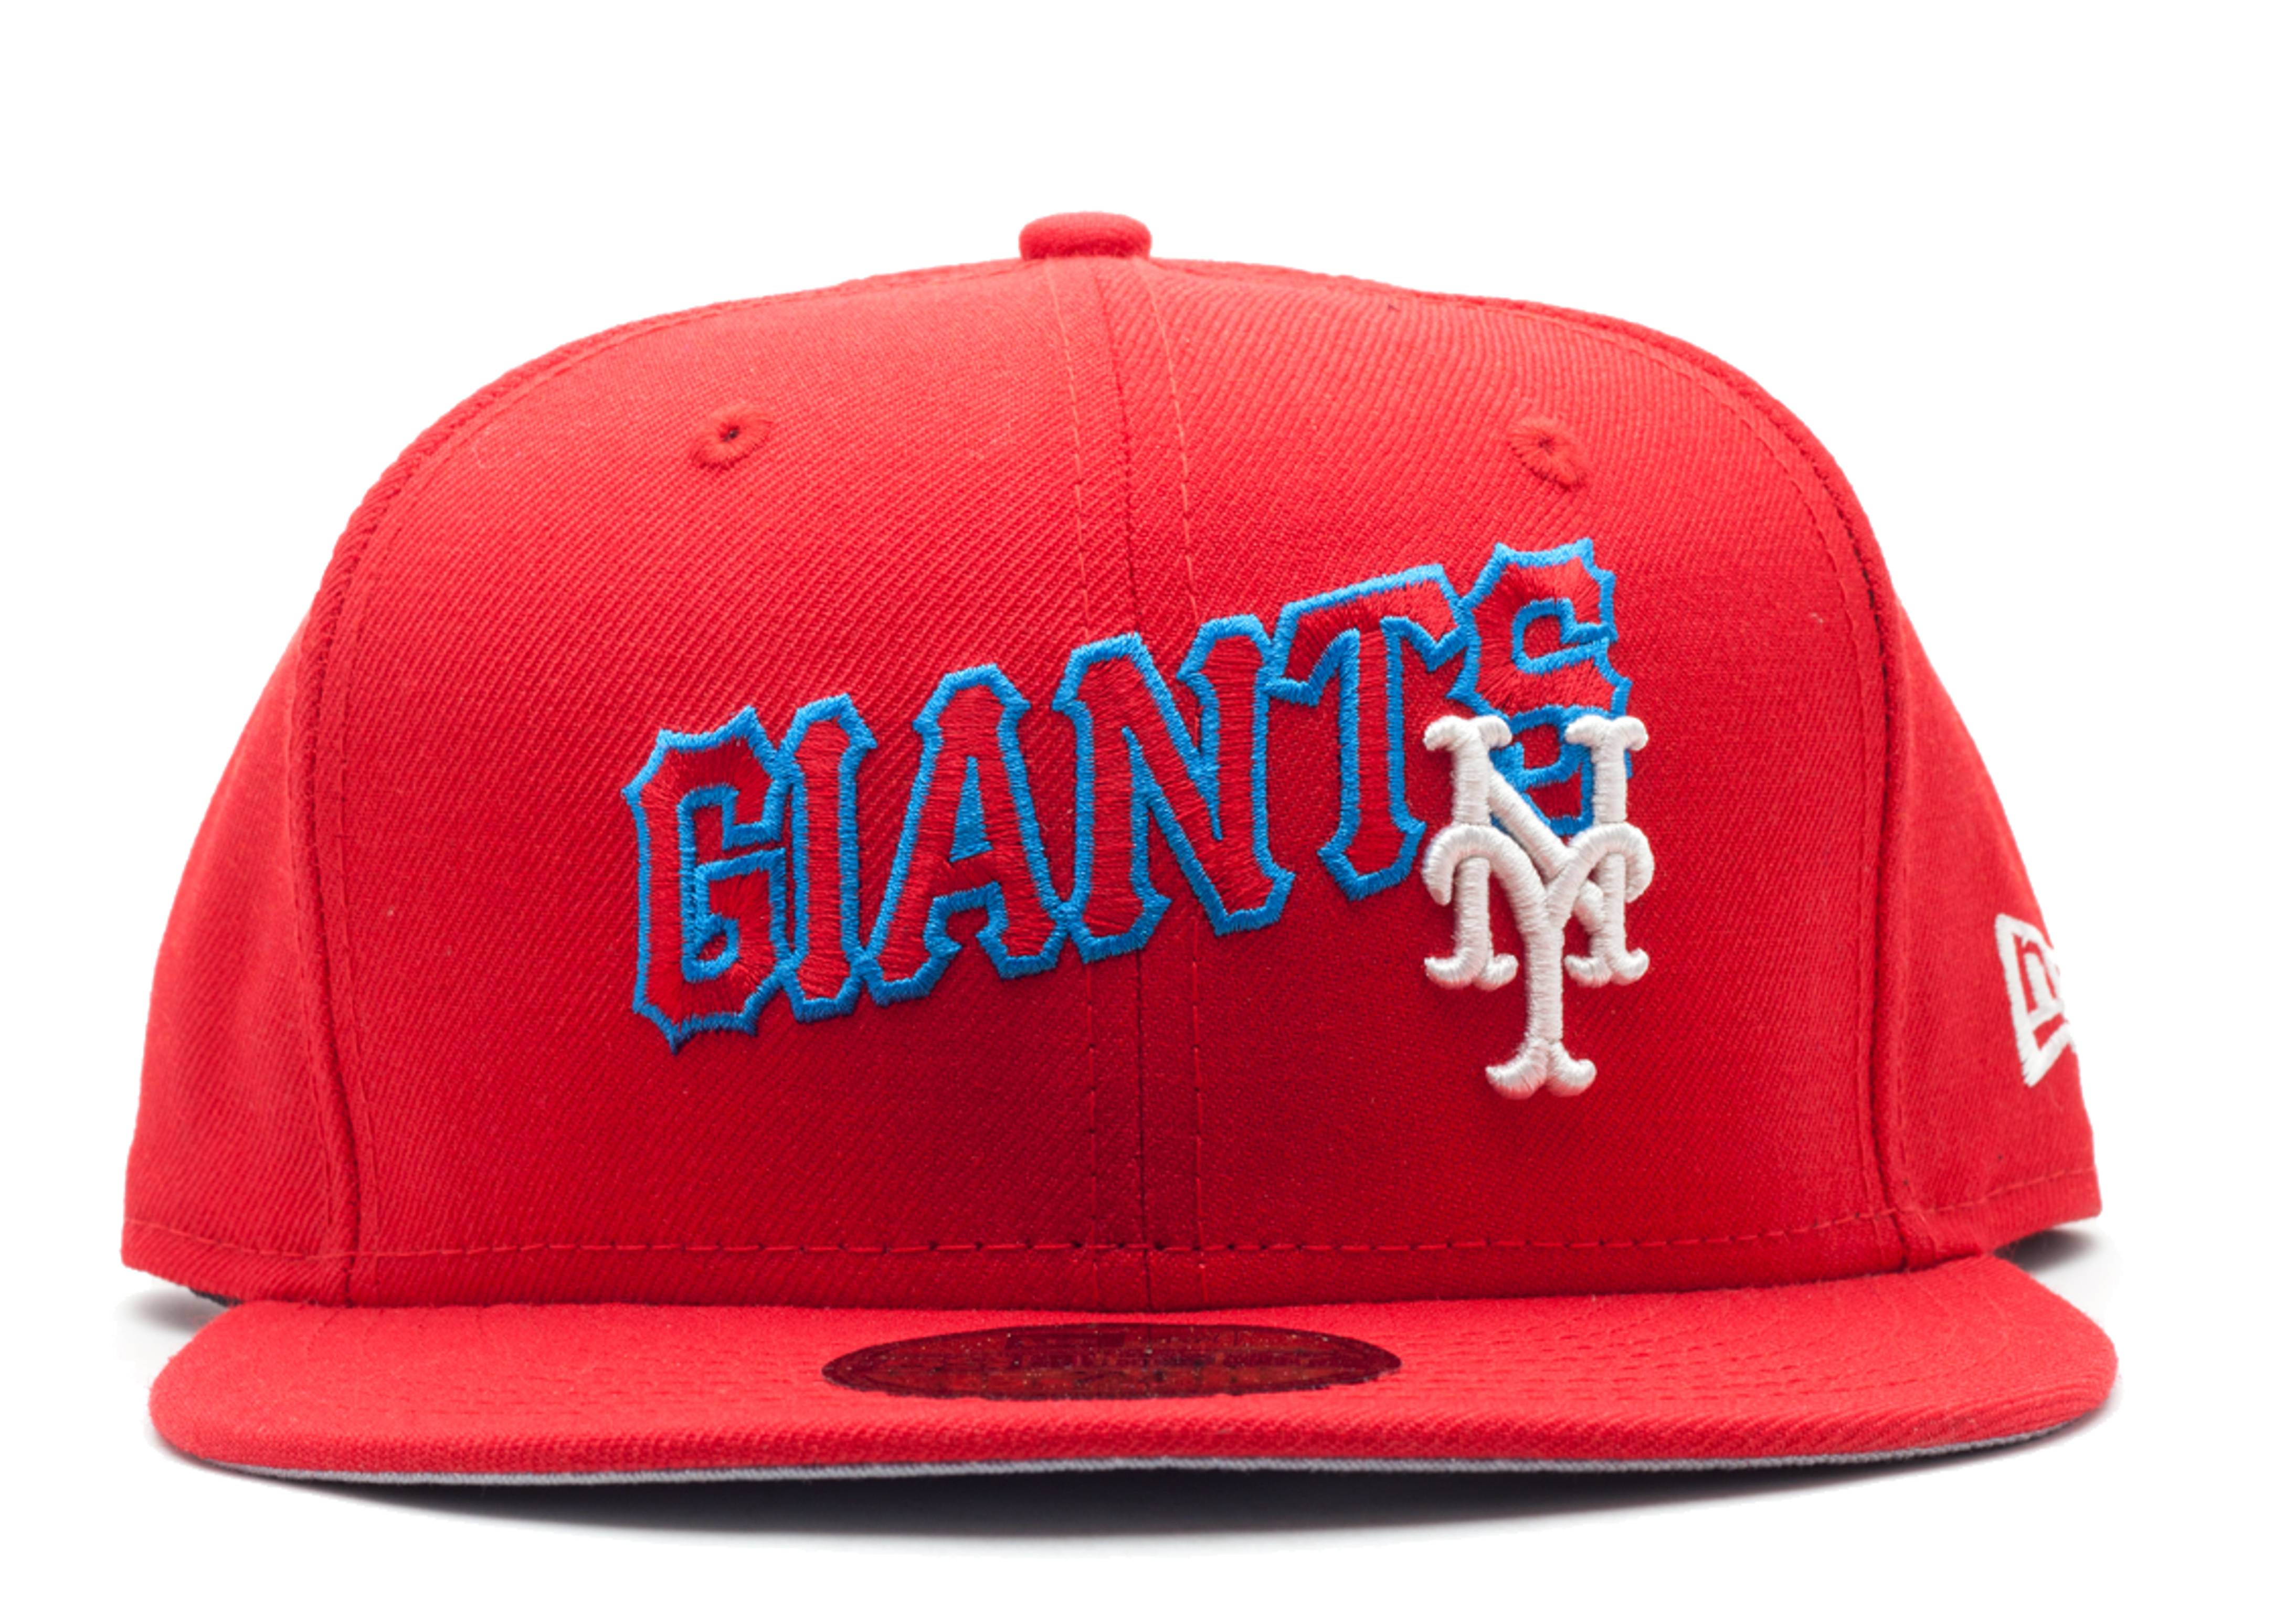 new york giants fitted